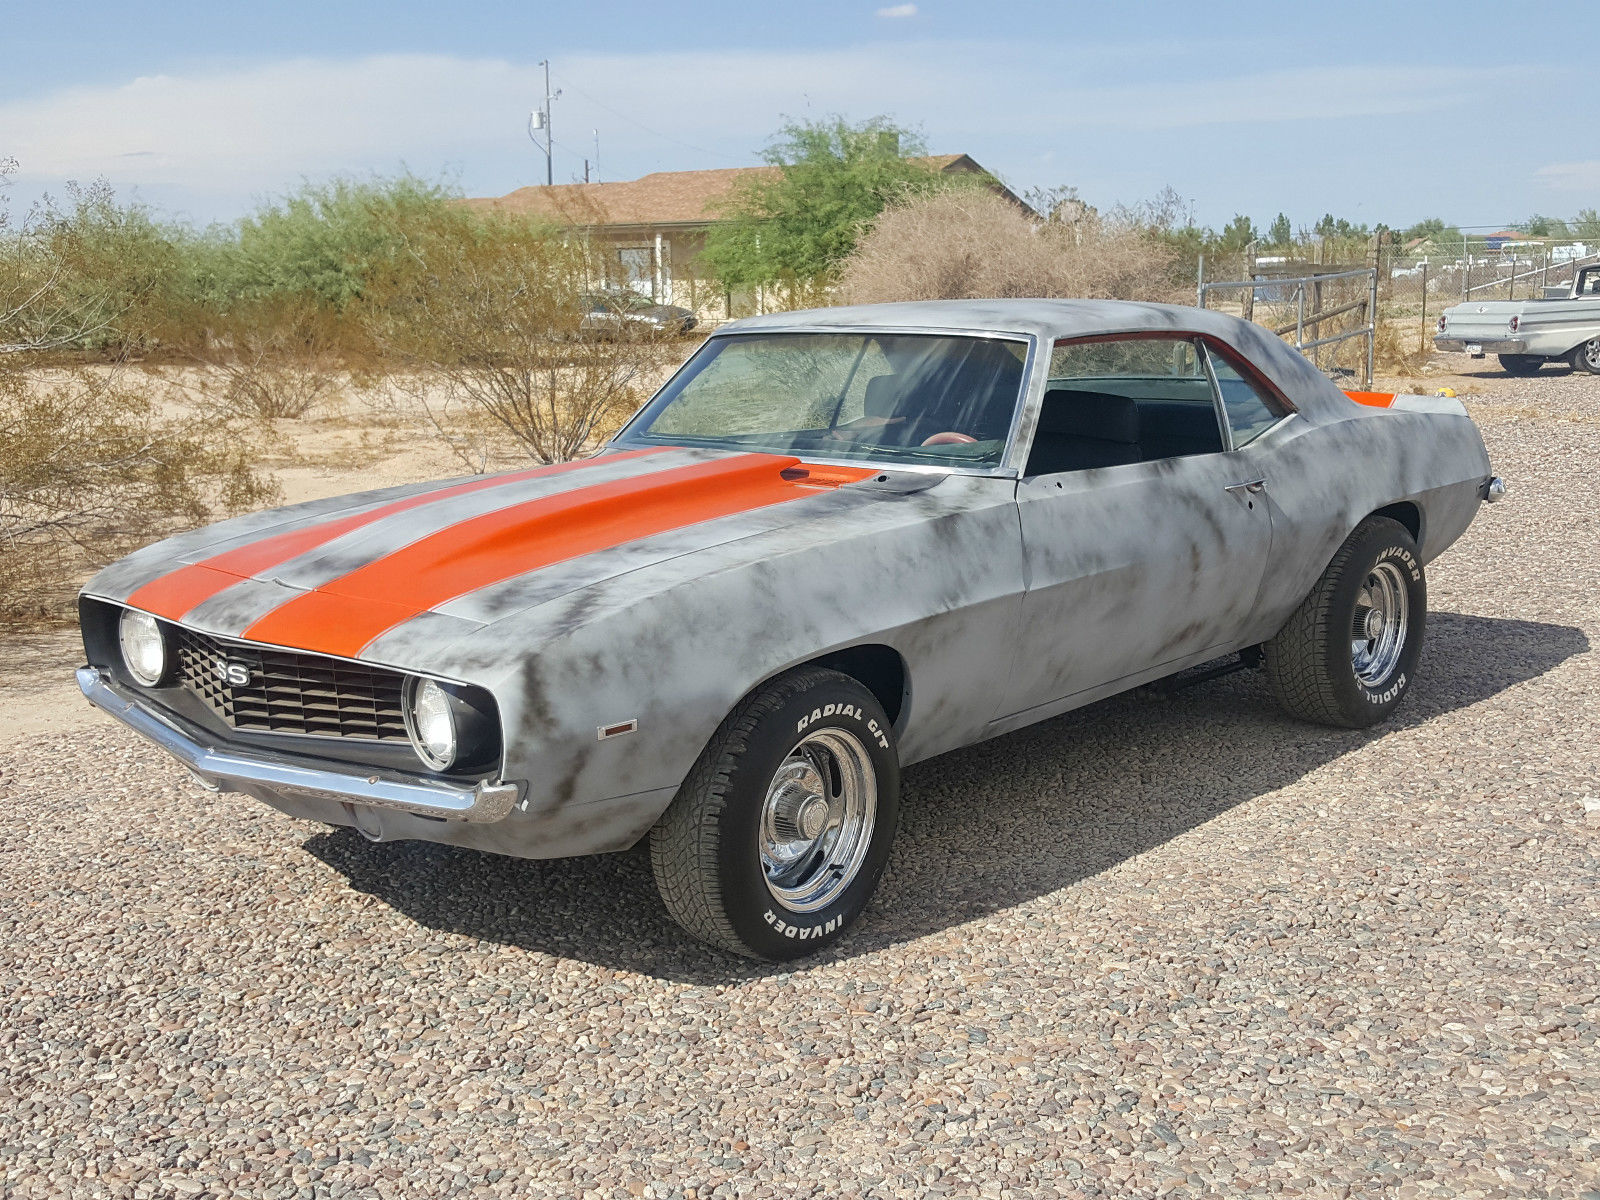 1969 chevrolet camaro ss real x55 hugger orange super sport pro touring project for sale. Black Bedroom Furniture Sets. Home Design Ideas